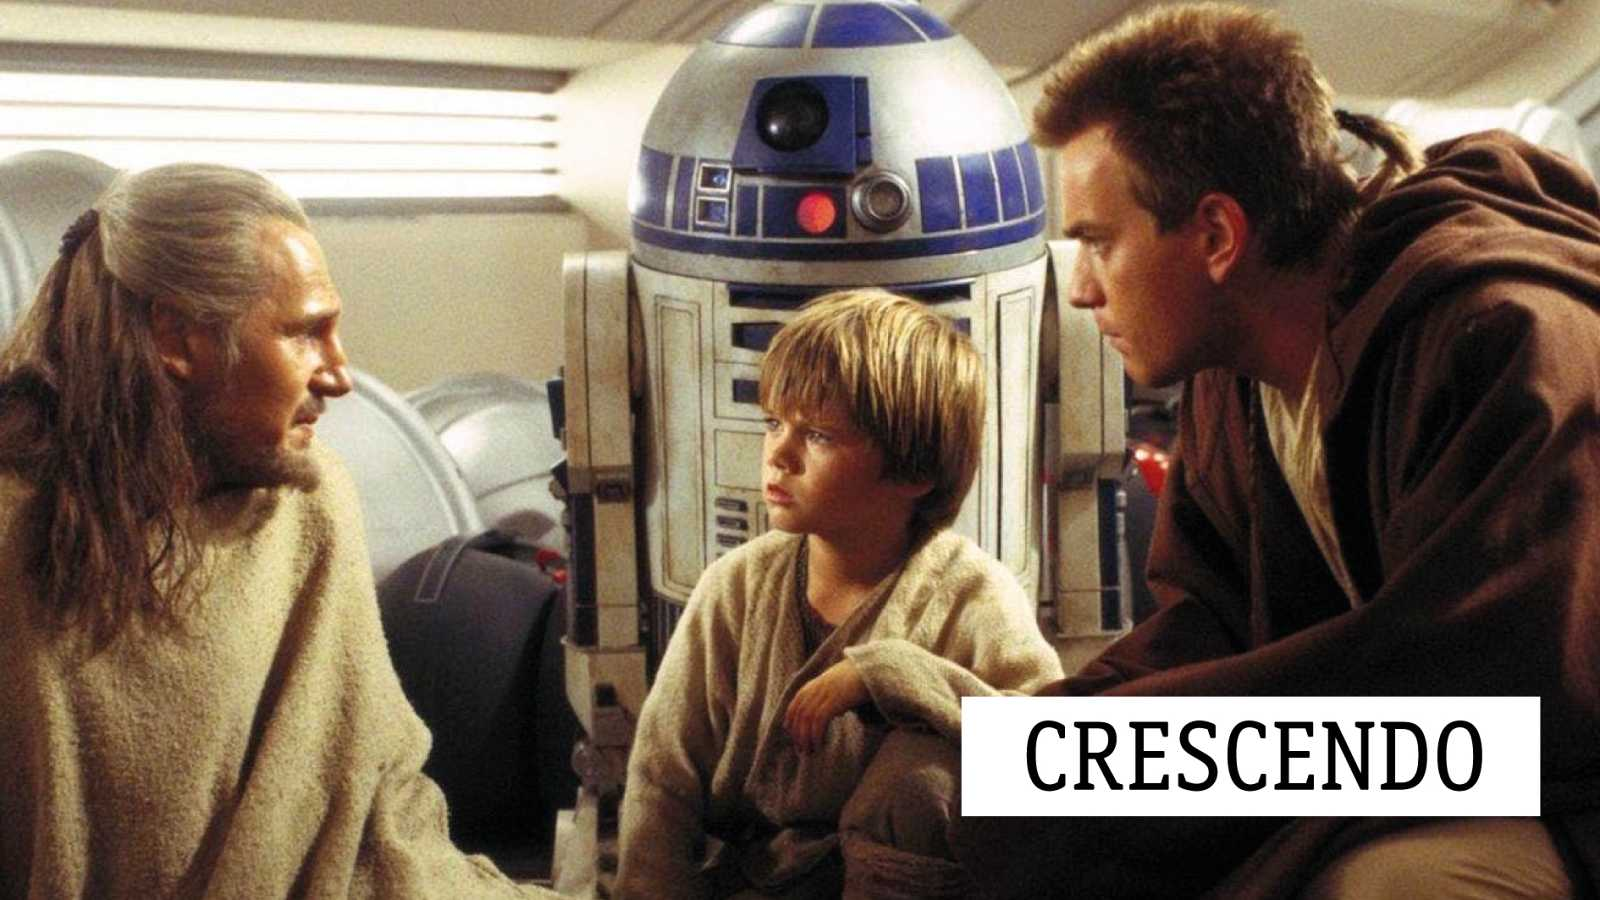 Crescendo - John Williams: Star Wars - 12/10/19 - esc